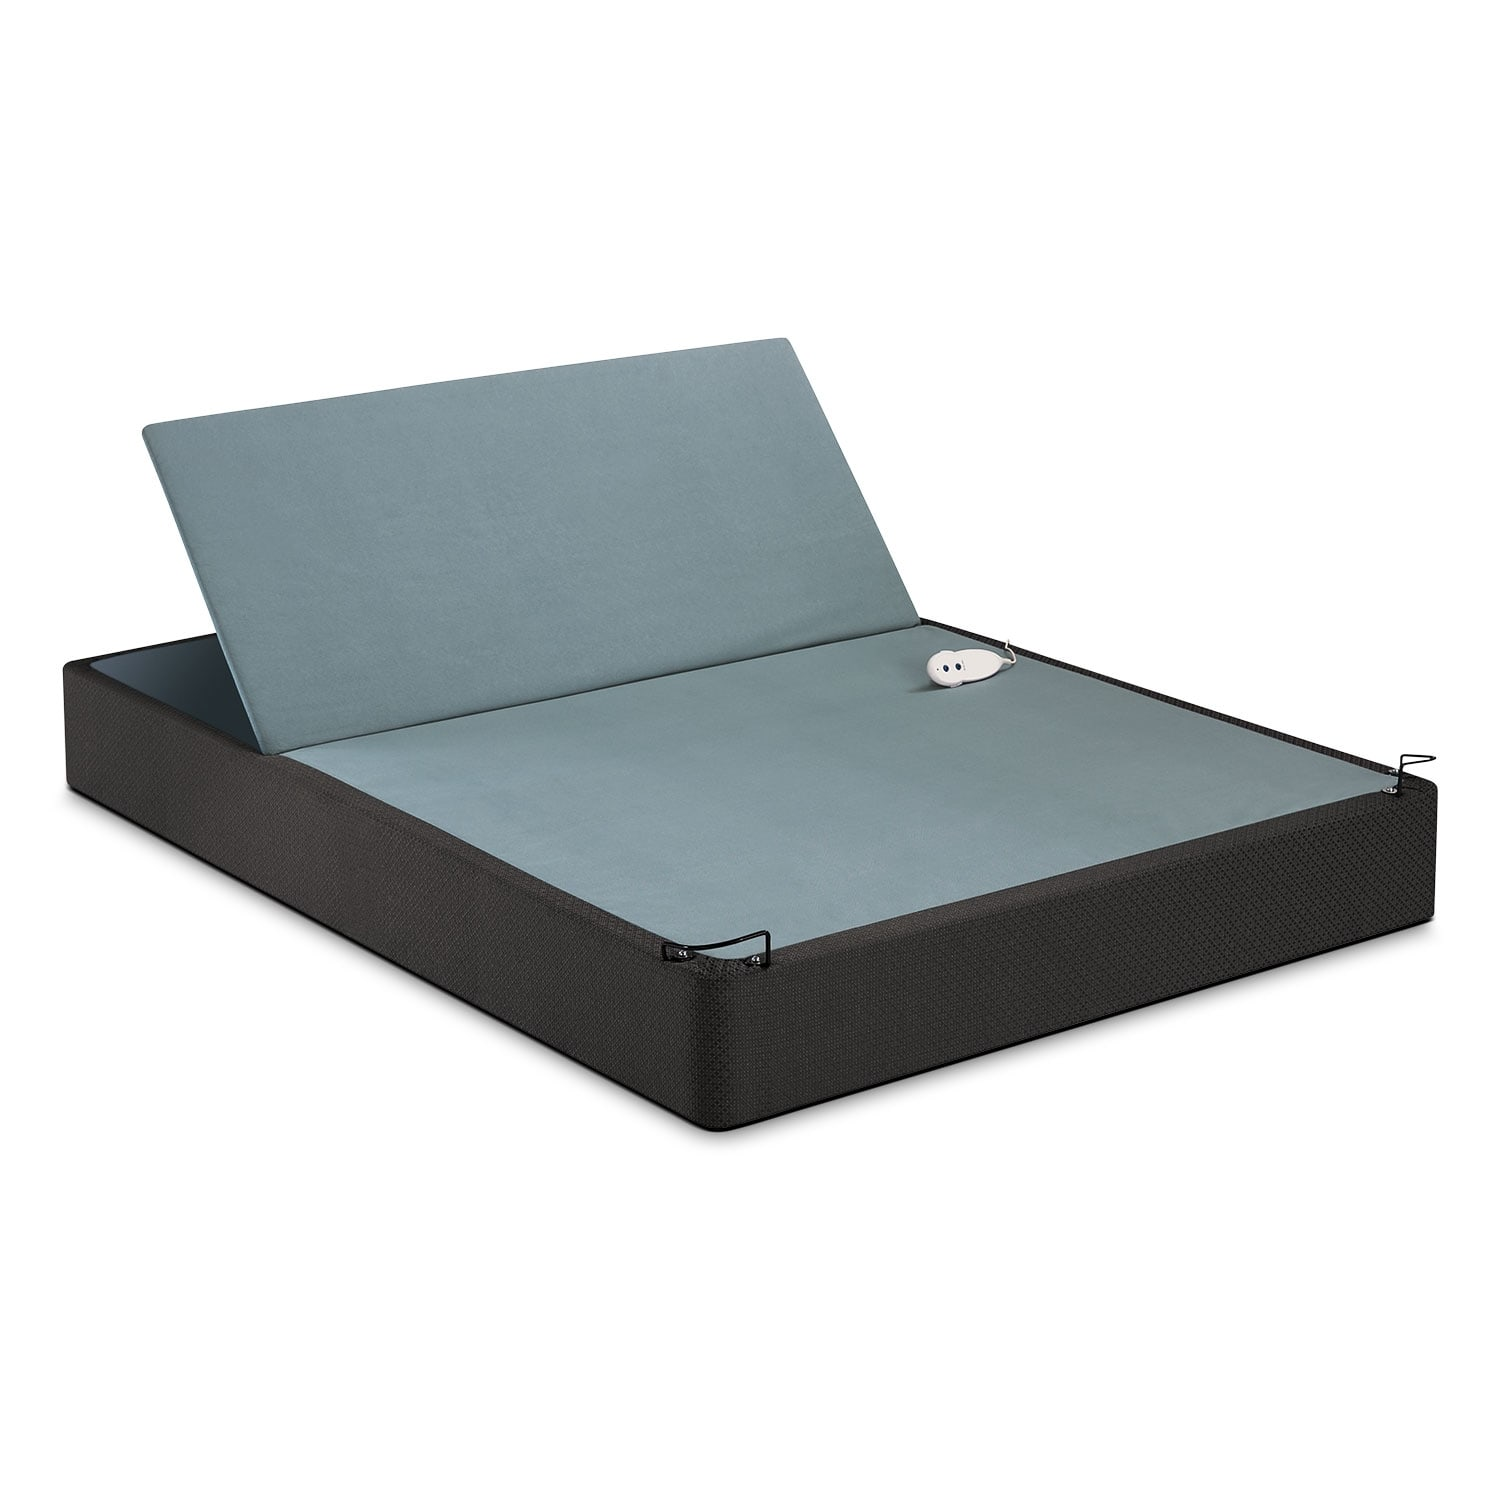 Mattresses and Bedding - Pivot Adjustable King Split Foundation